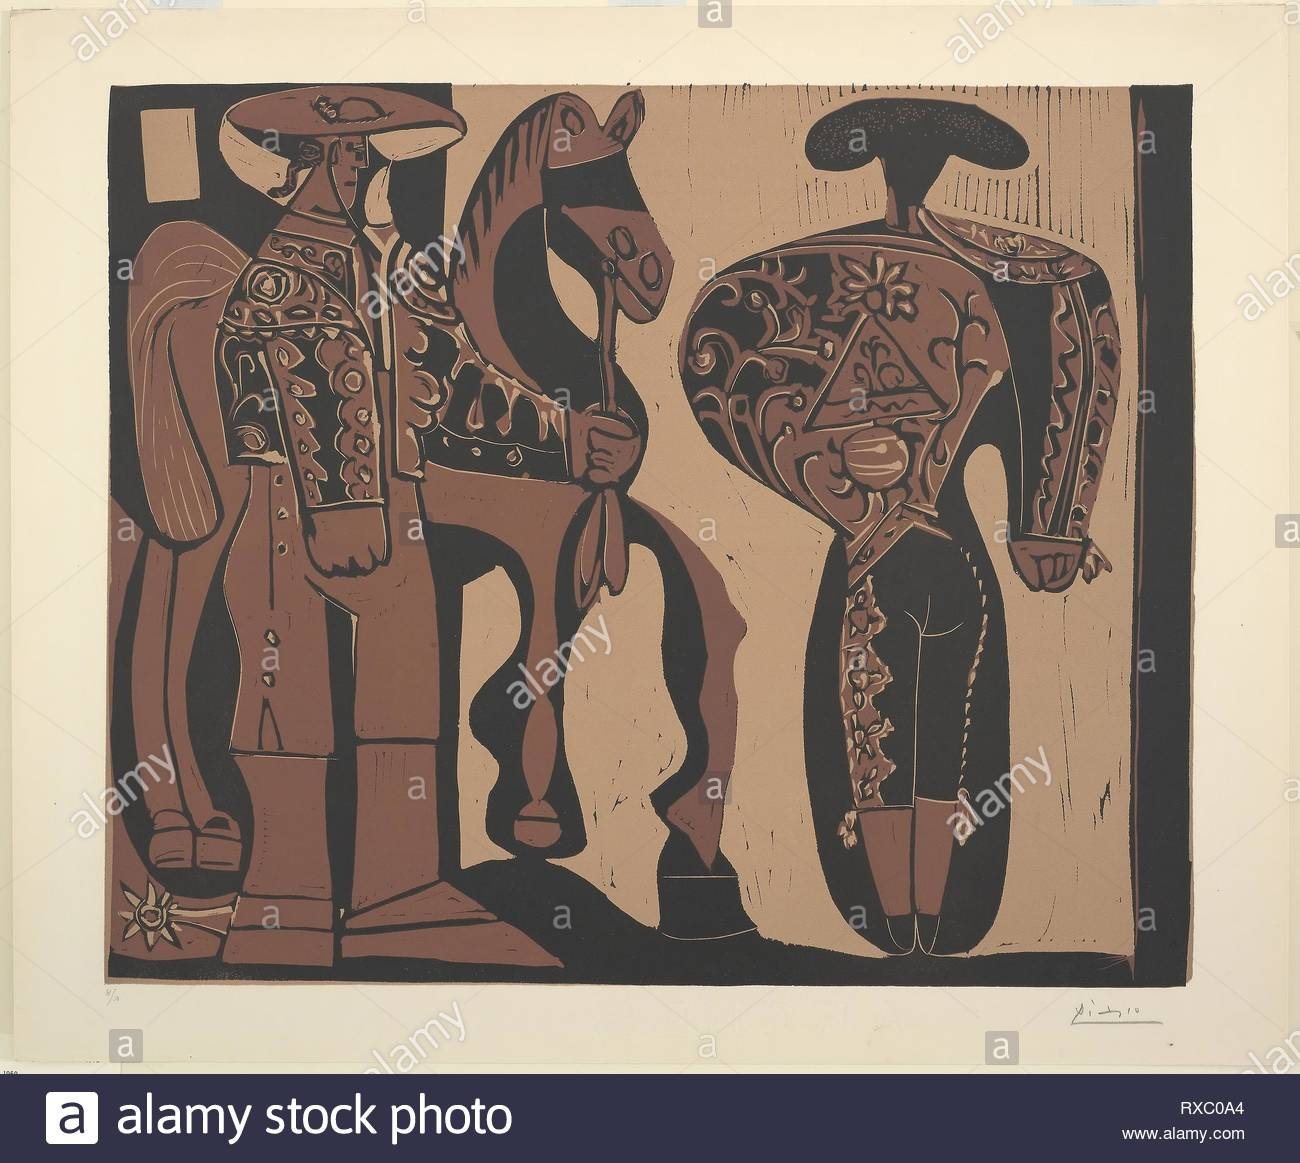 Picador and Bullfighter. Pablo Picasso (Spanish, 1881-1973); printed by Hidalgo Arnéra; published by Galerie Louise Leiris. Date: 1959. Dimensions: 532 x 642 mm (image); 624 x 752 mm (sheet). Color linocut on ivory wove paper. Origin: Spain. Museum: The Chicago Art Institute. - Stock Image